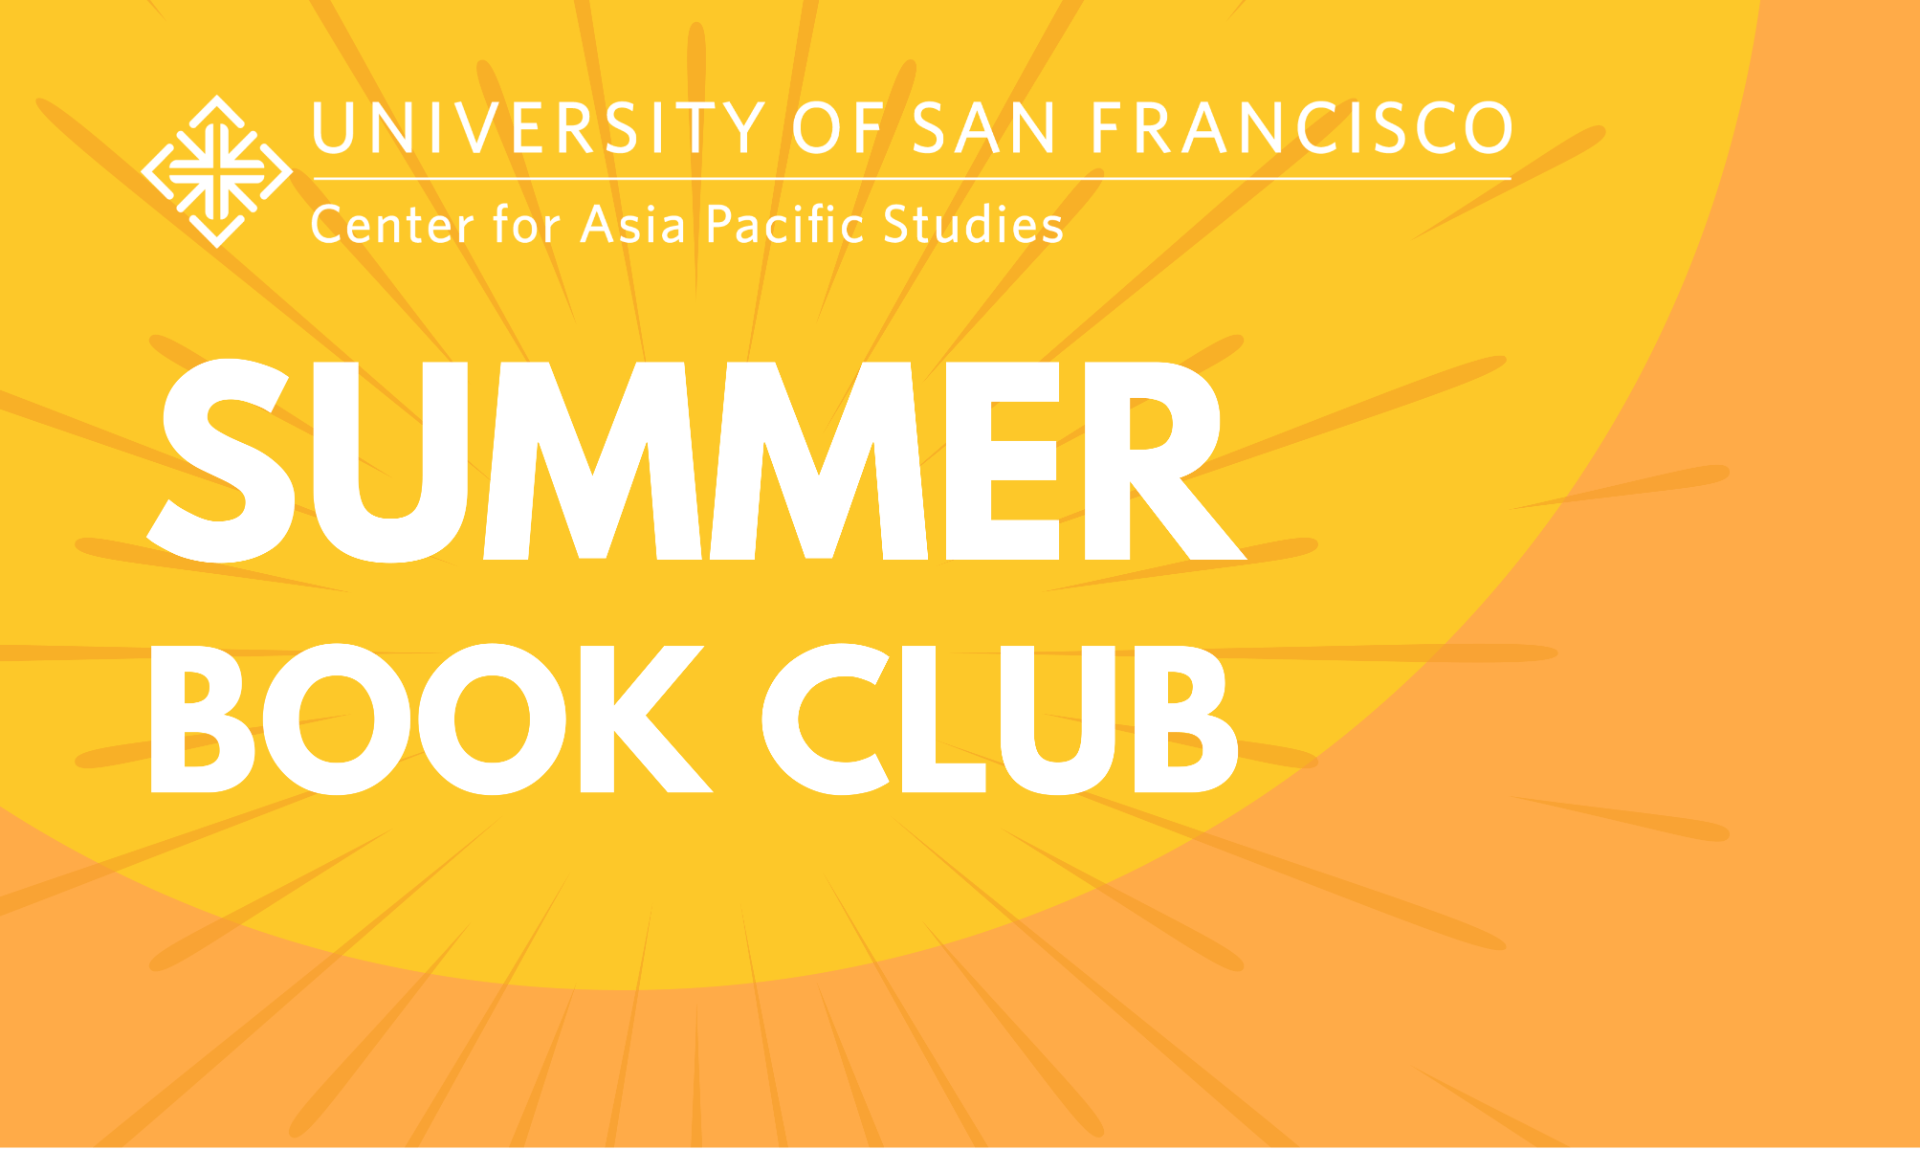 Summer Book Club graphic